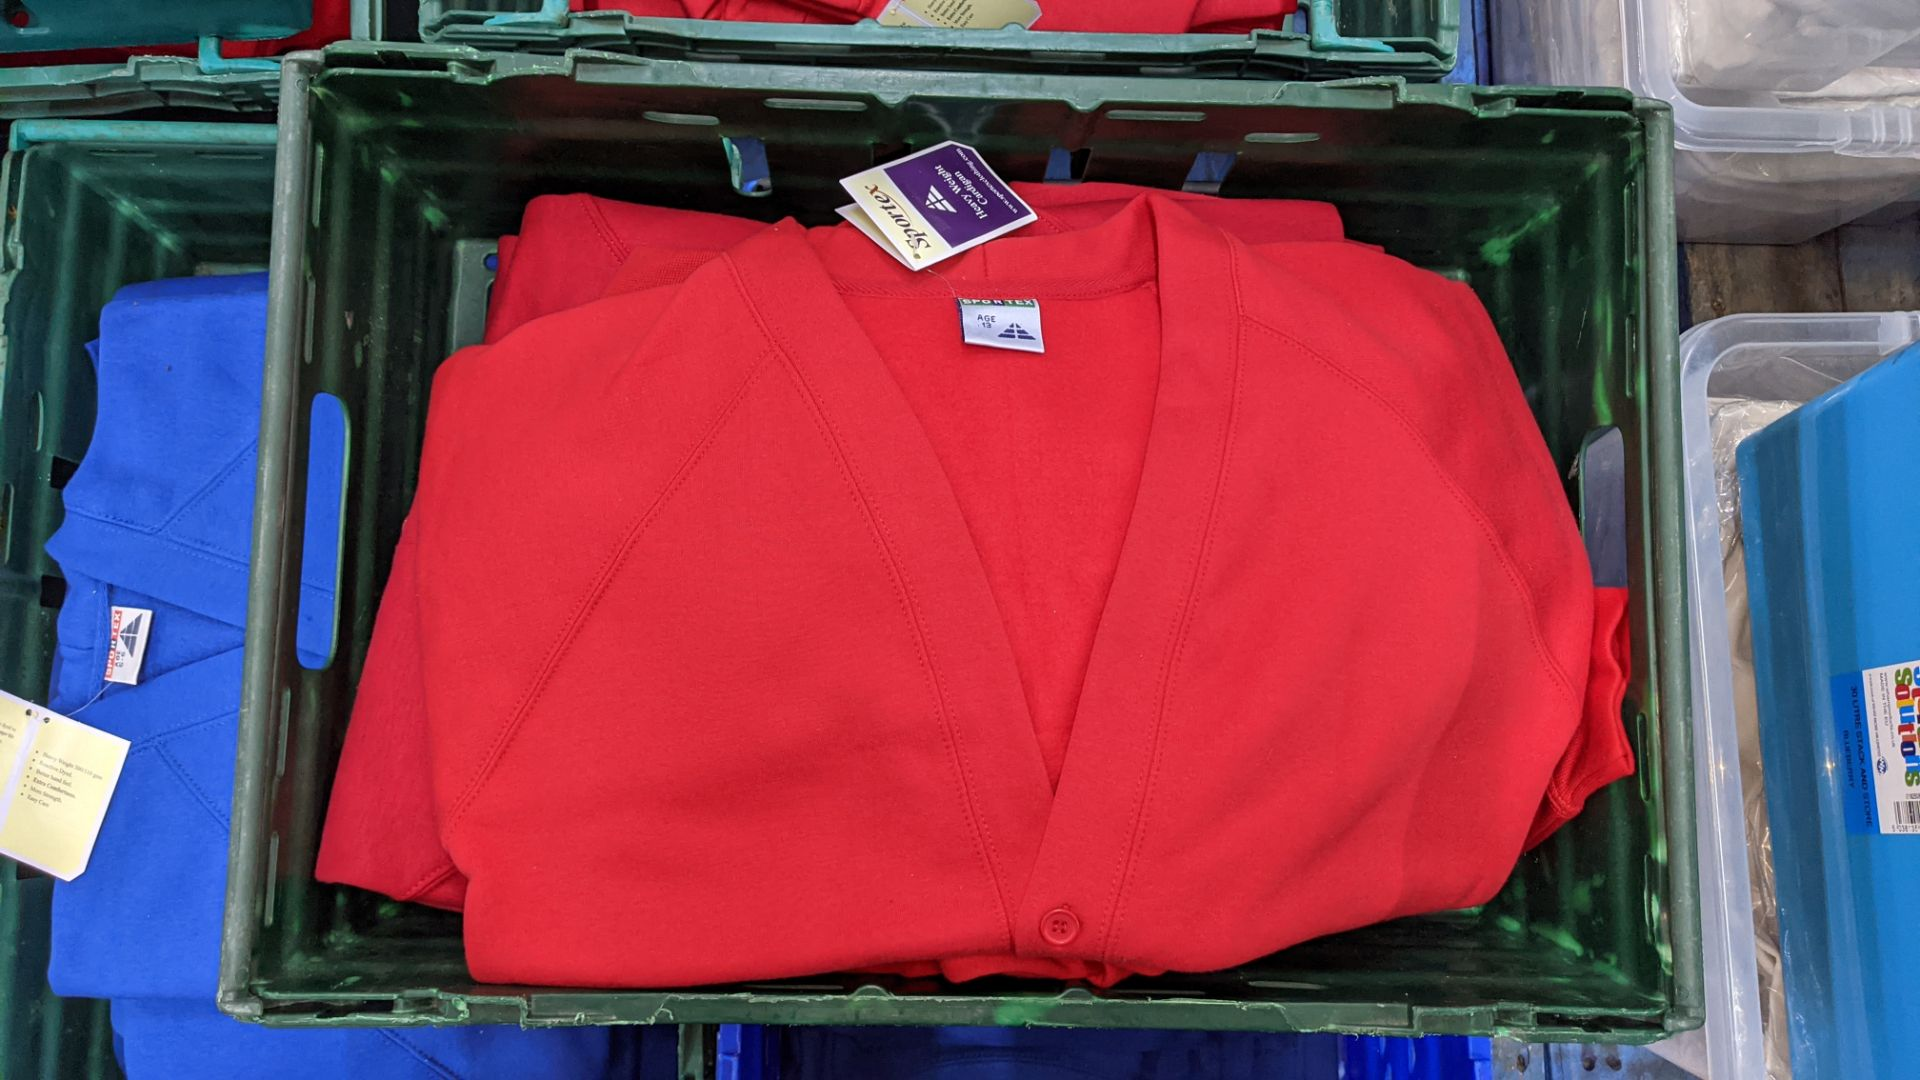 Approx 18 off Sportex children's assorted sweatshirts - the contents of 2 crates. NB crates exclude - Image 4 of 5